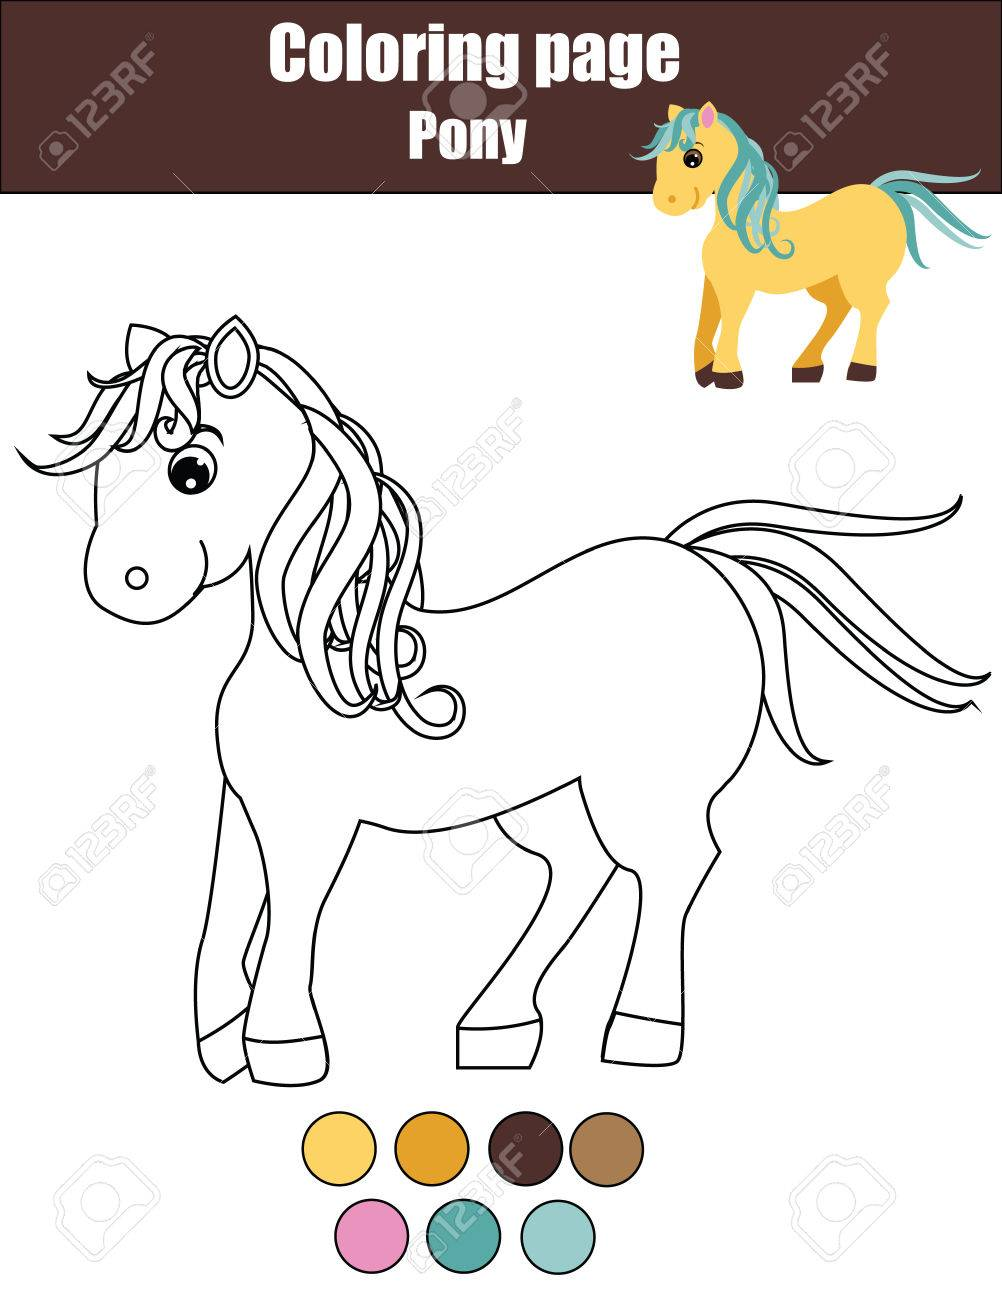 1002x1300 Coloring Page With Cute Pony. Color The Little Horse Drawing